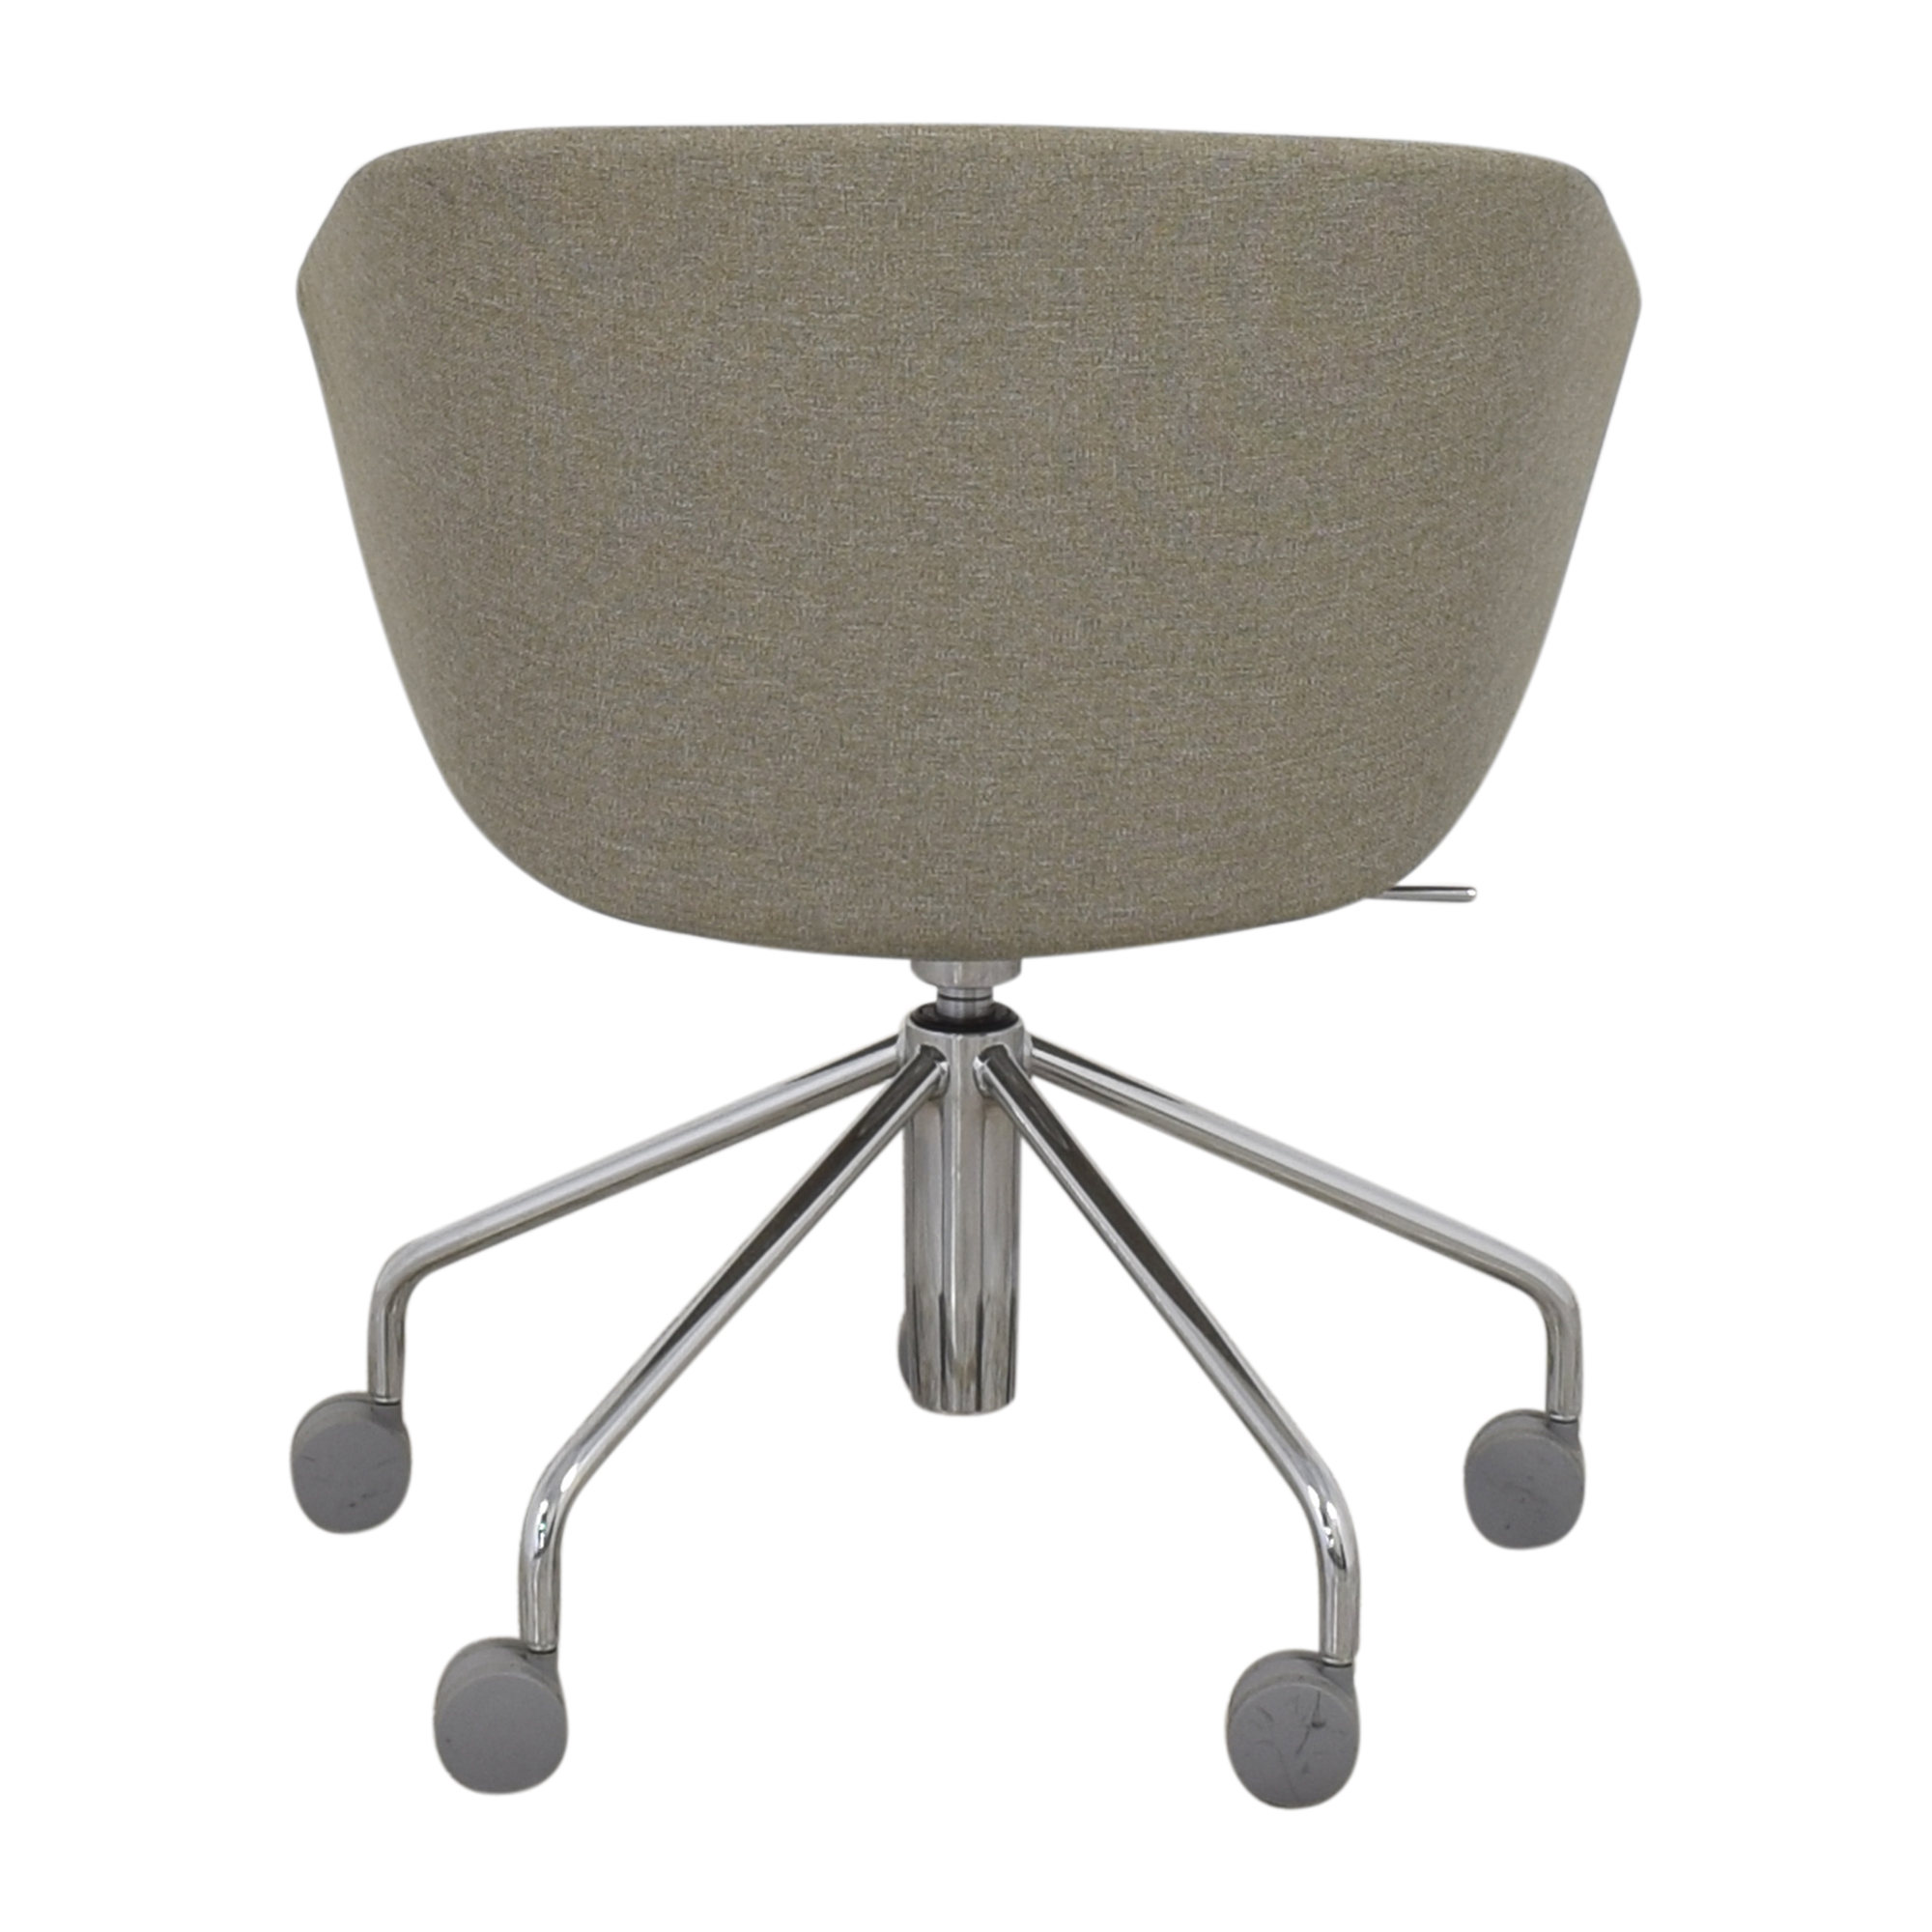 Poppin Pitch Meeting Chair Poppin